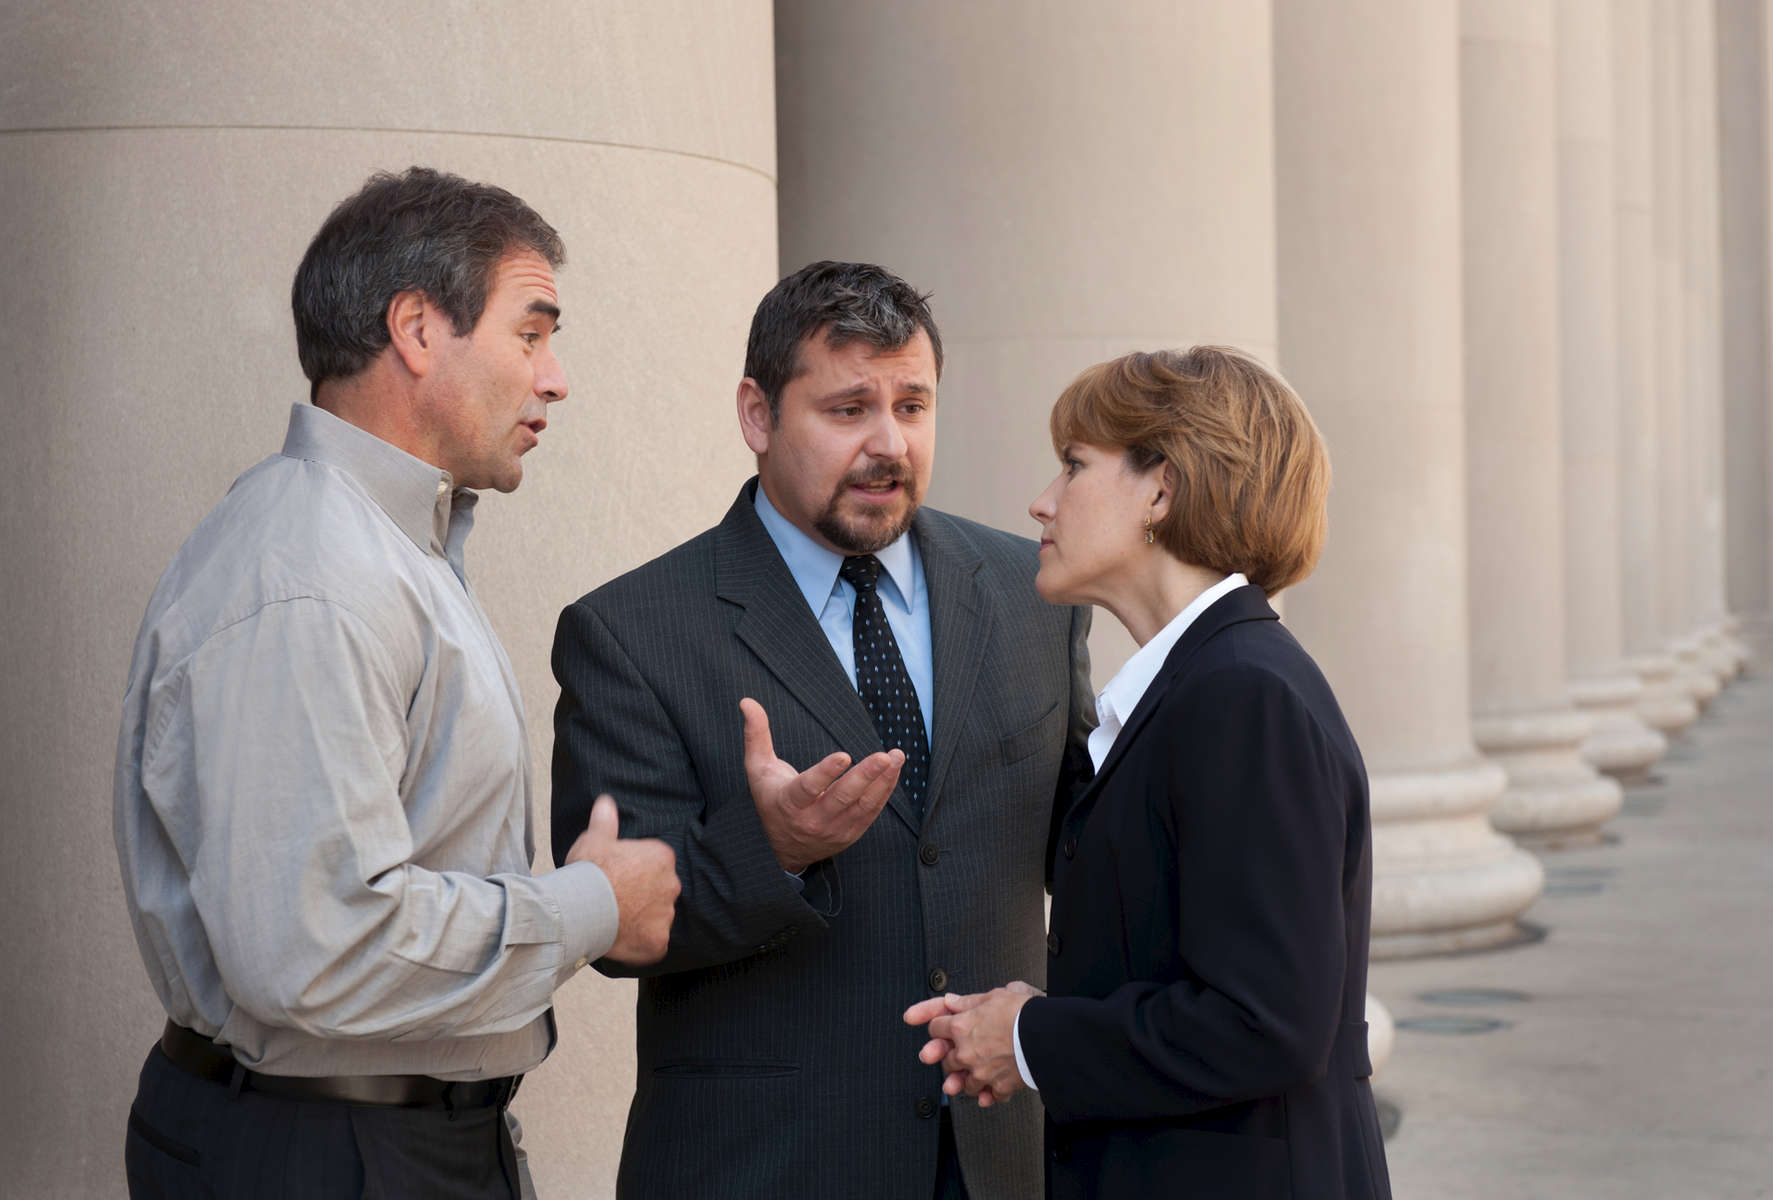 Corporate translator speaking to two people outside a courthouse.